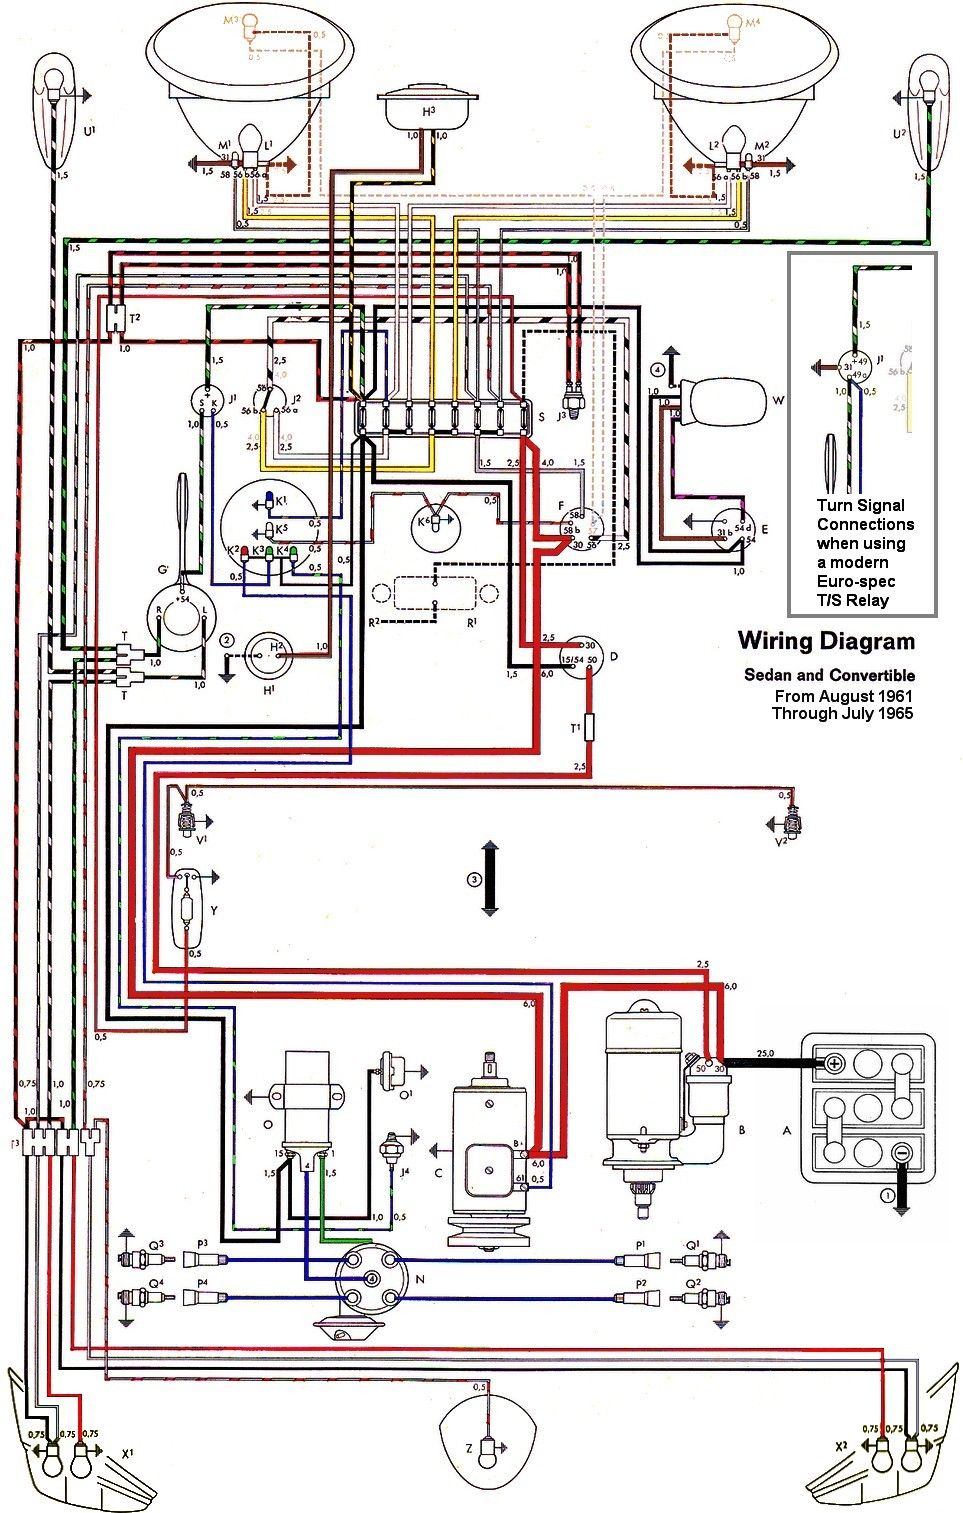 wiring diagram vw beetle sedan and convertible 1961 1965 vw rh pinterest com Electrical Wire Color Codes Wire Connector Color Code